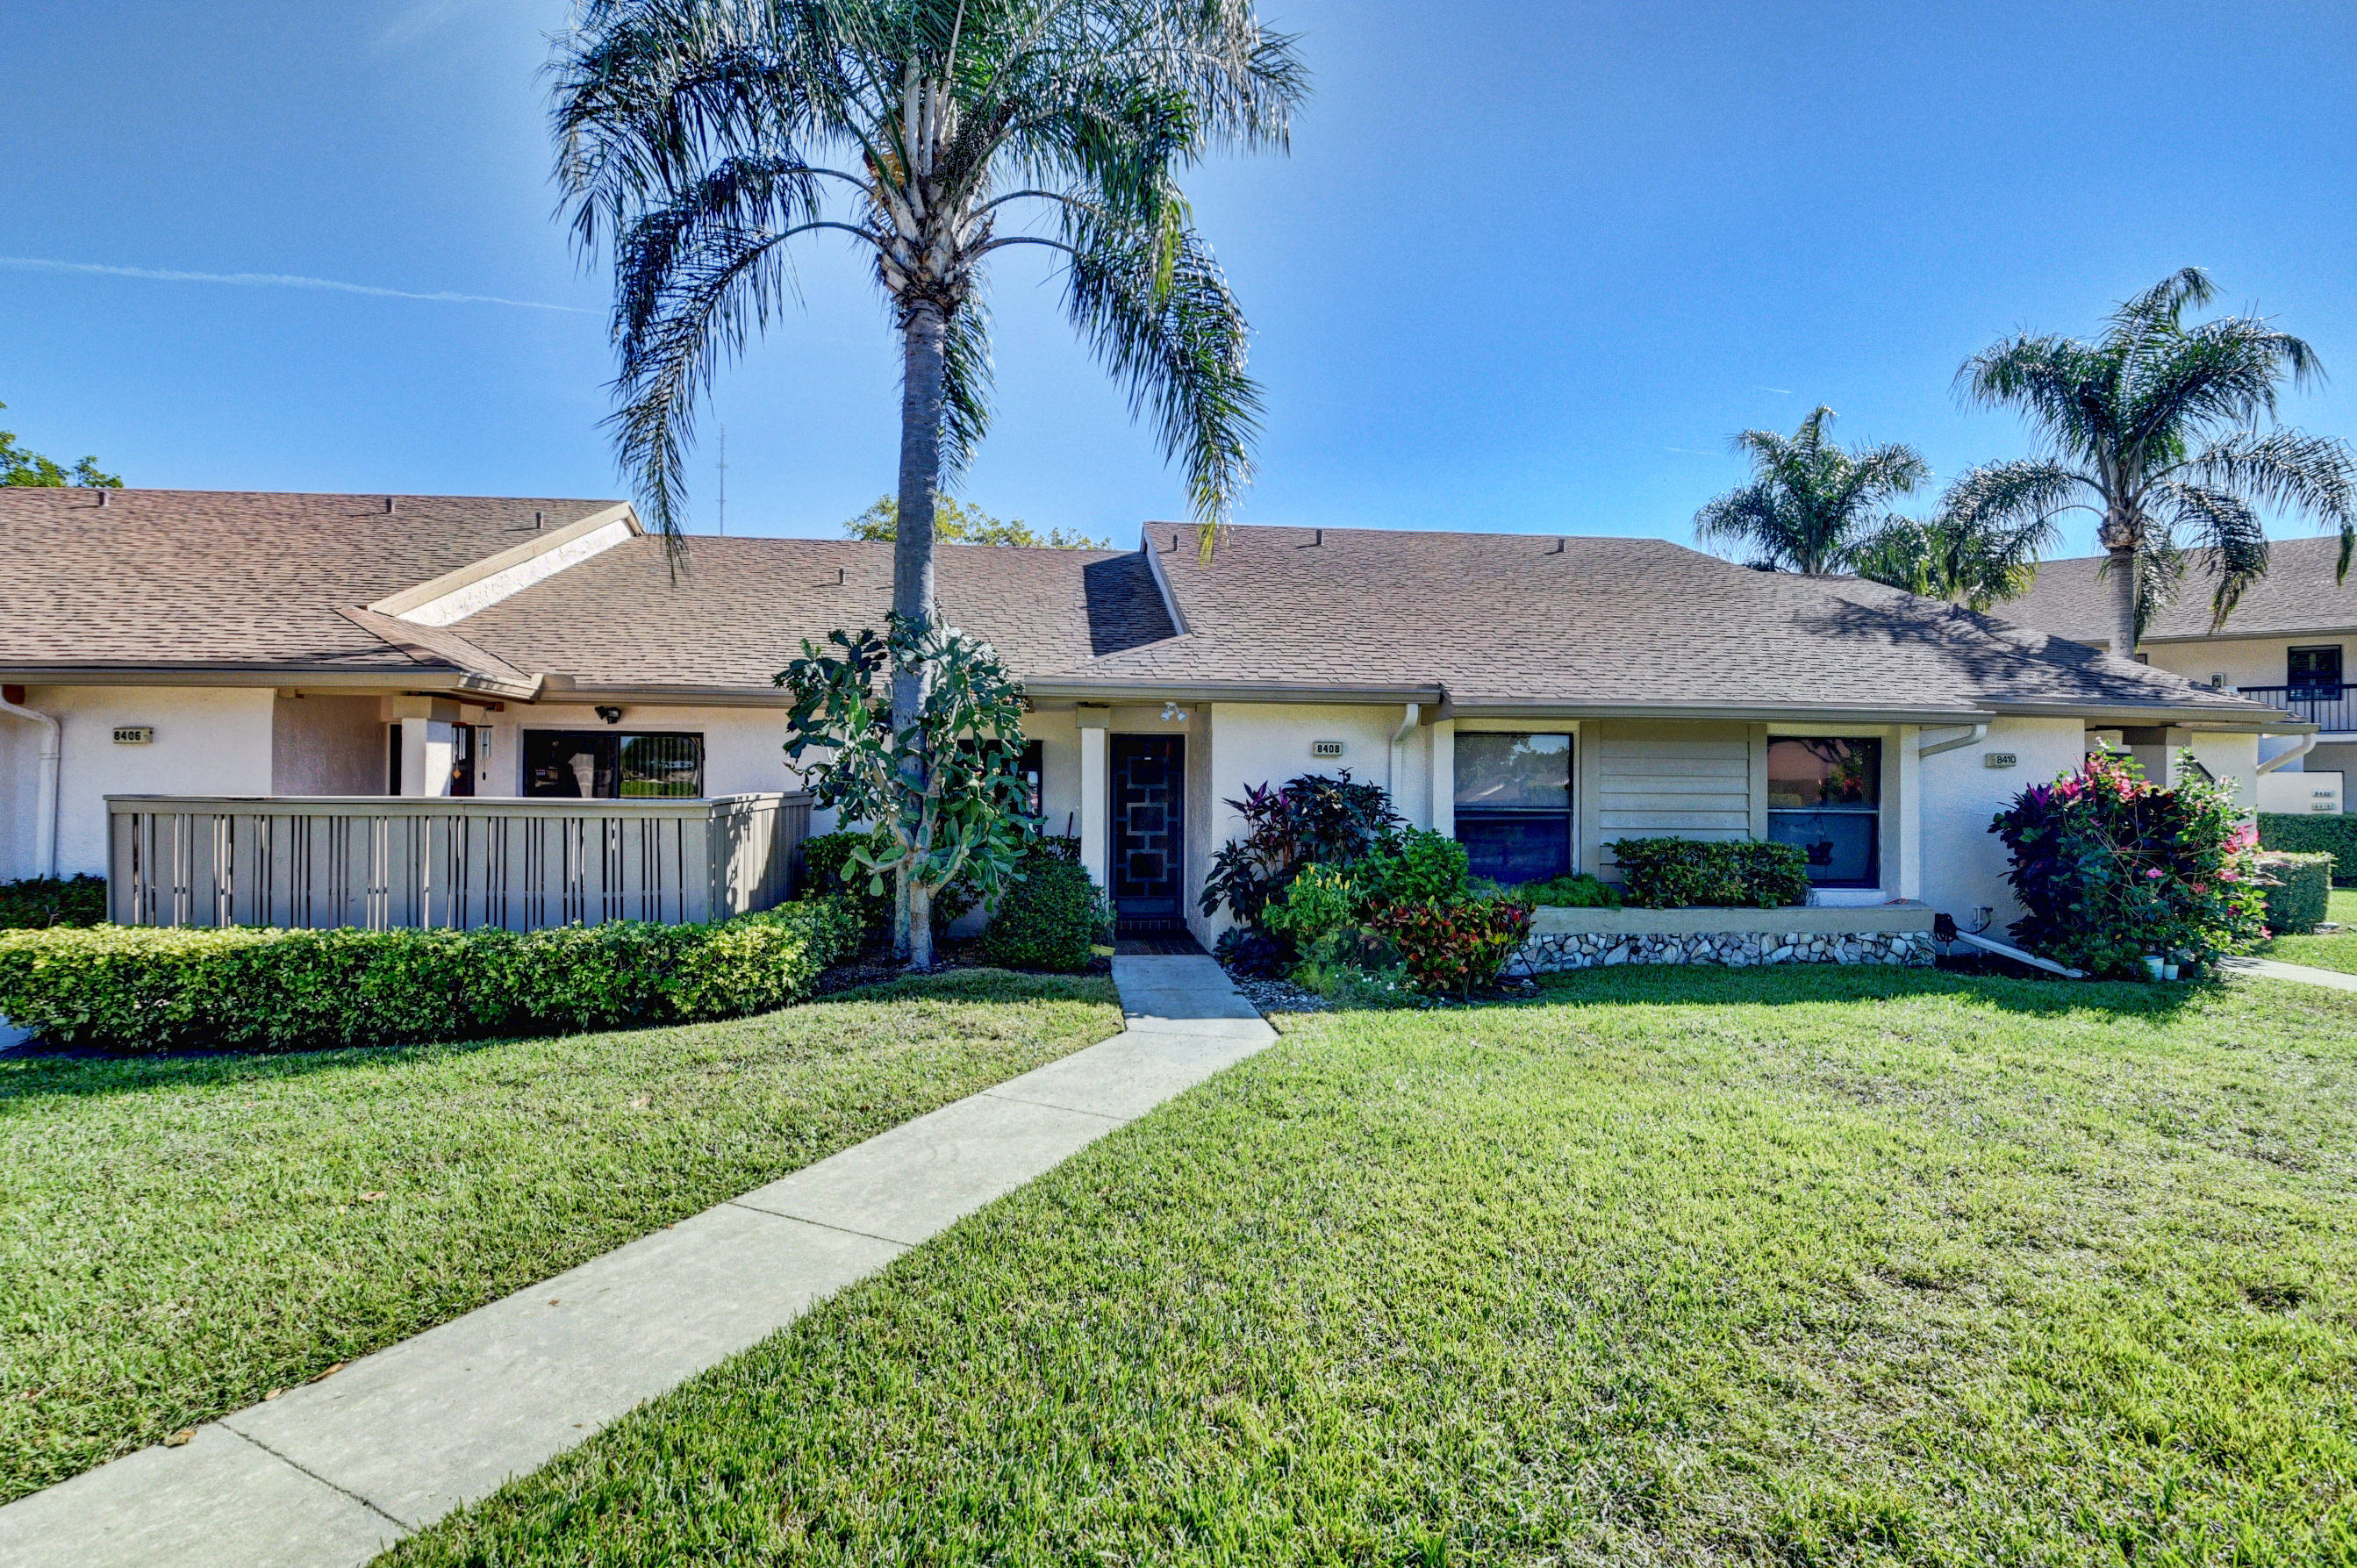 Home for sale in Boca Glades Cond A Thru D Decl Filed OR4136P147 OR4237P1 OR4565P727&4650P752 Boca Raton Florida